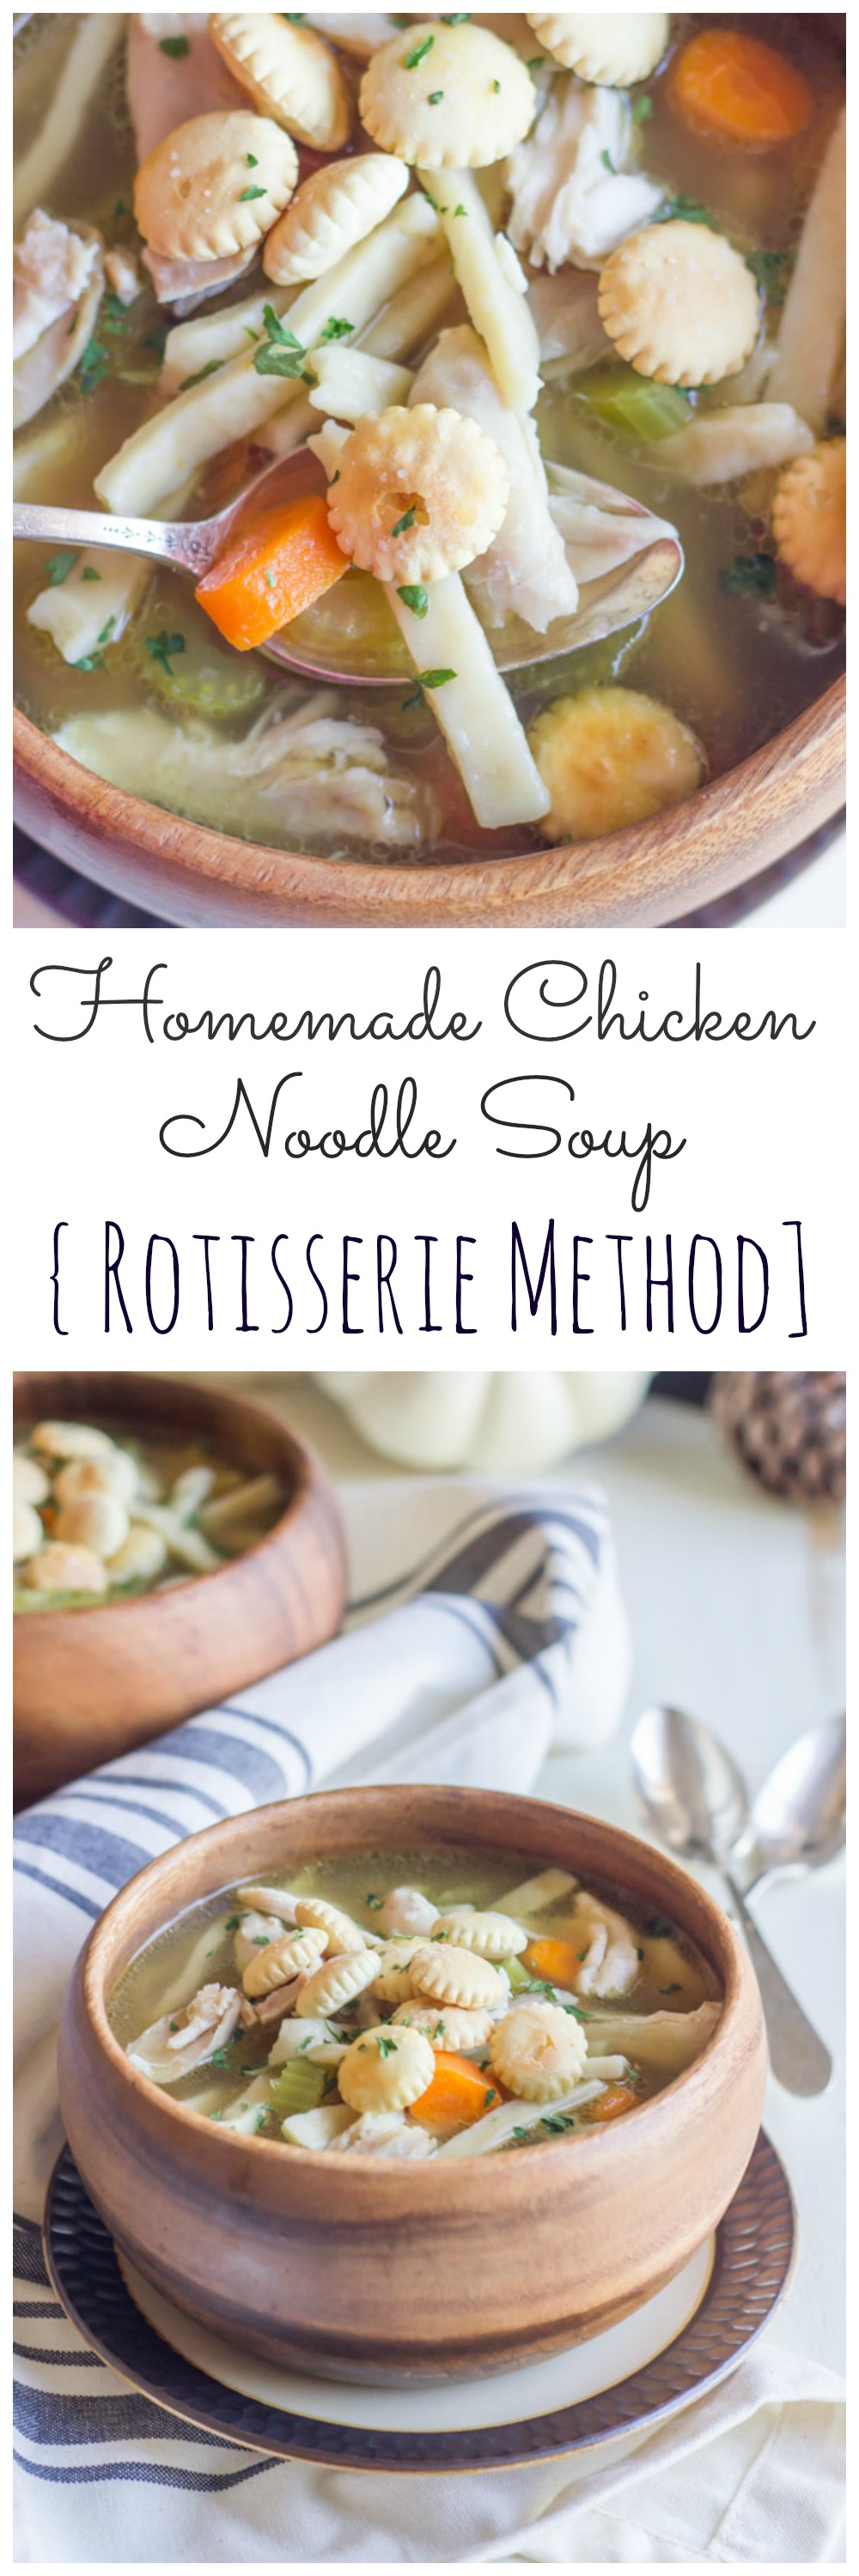 how to make a rich flavorful broth from a rotisserie